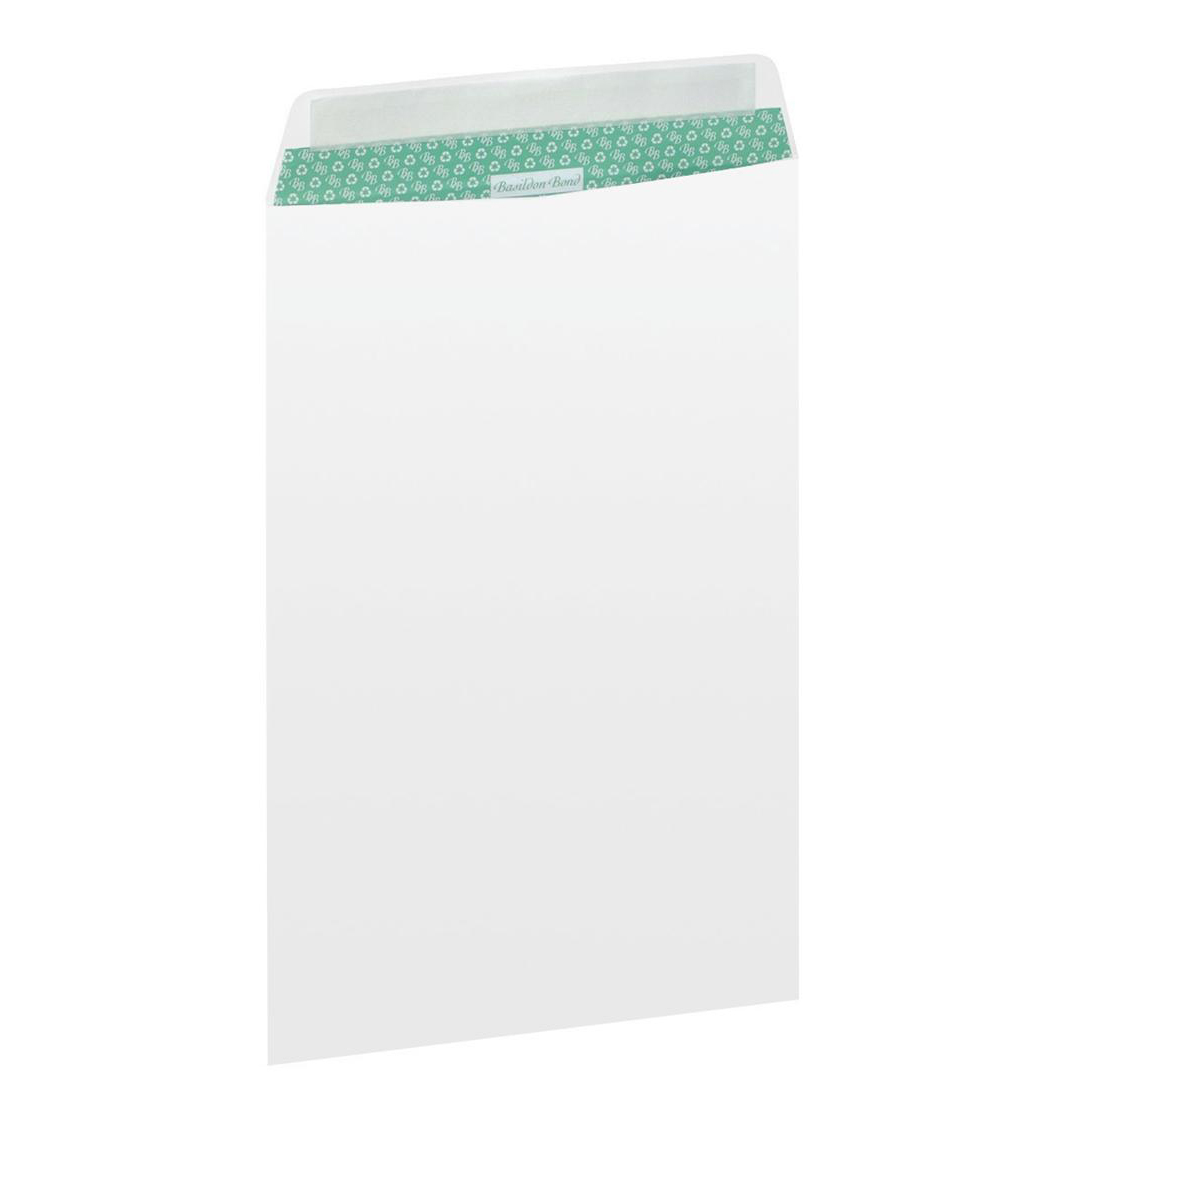 Basildon Bond Envelopes Recycled Pocket Peel and Seal Window 120gsm C4 White Ref B80285 Pack 50